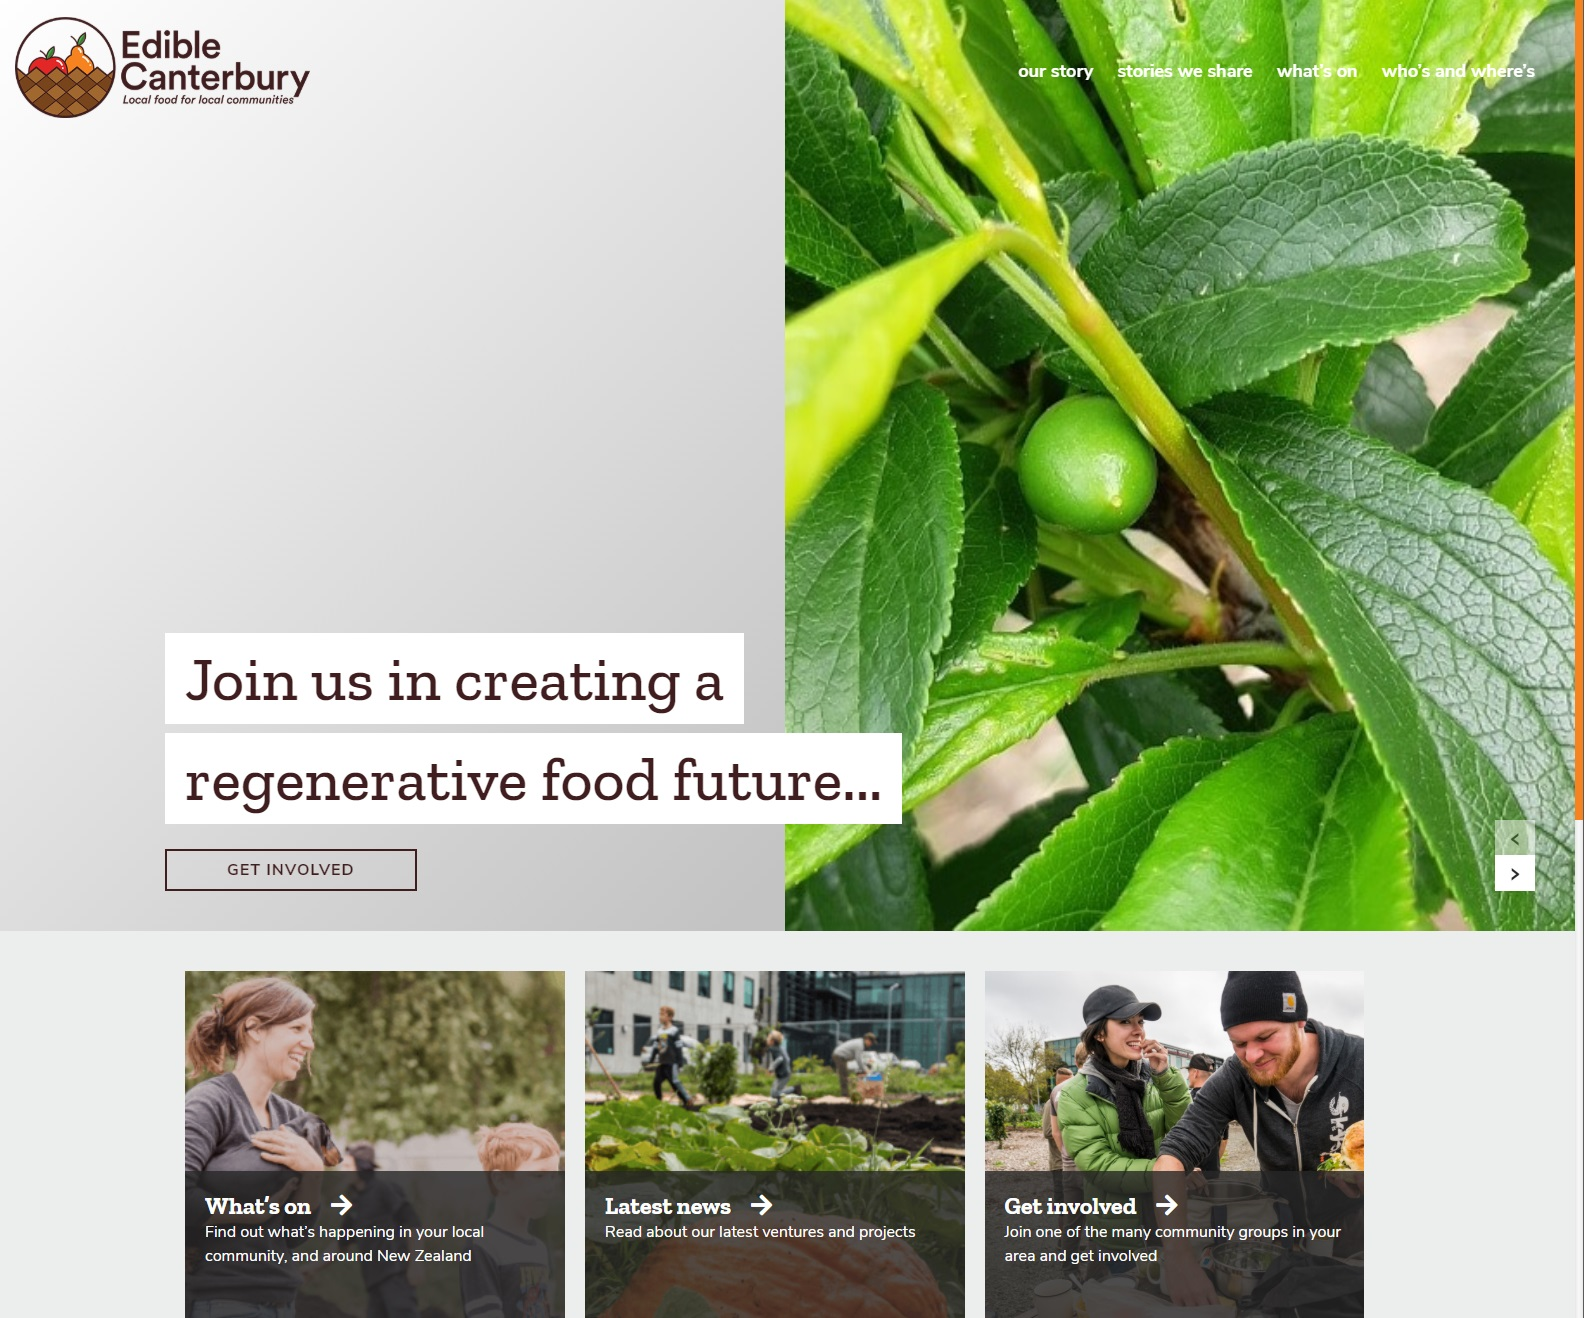 Edible Canterbury site screenshot June 2019.jpg